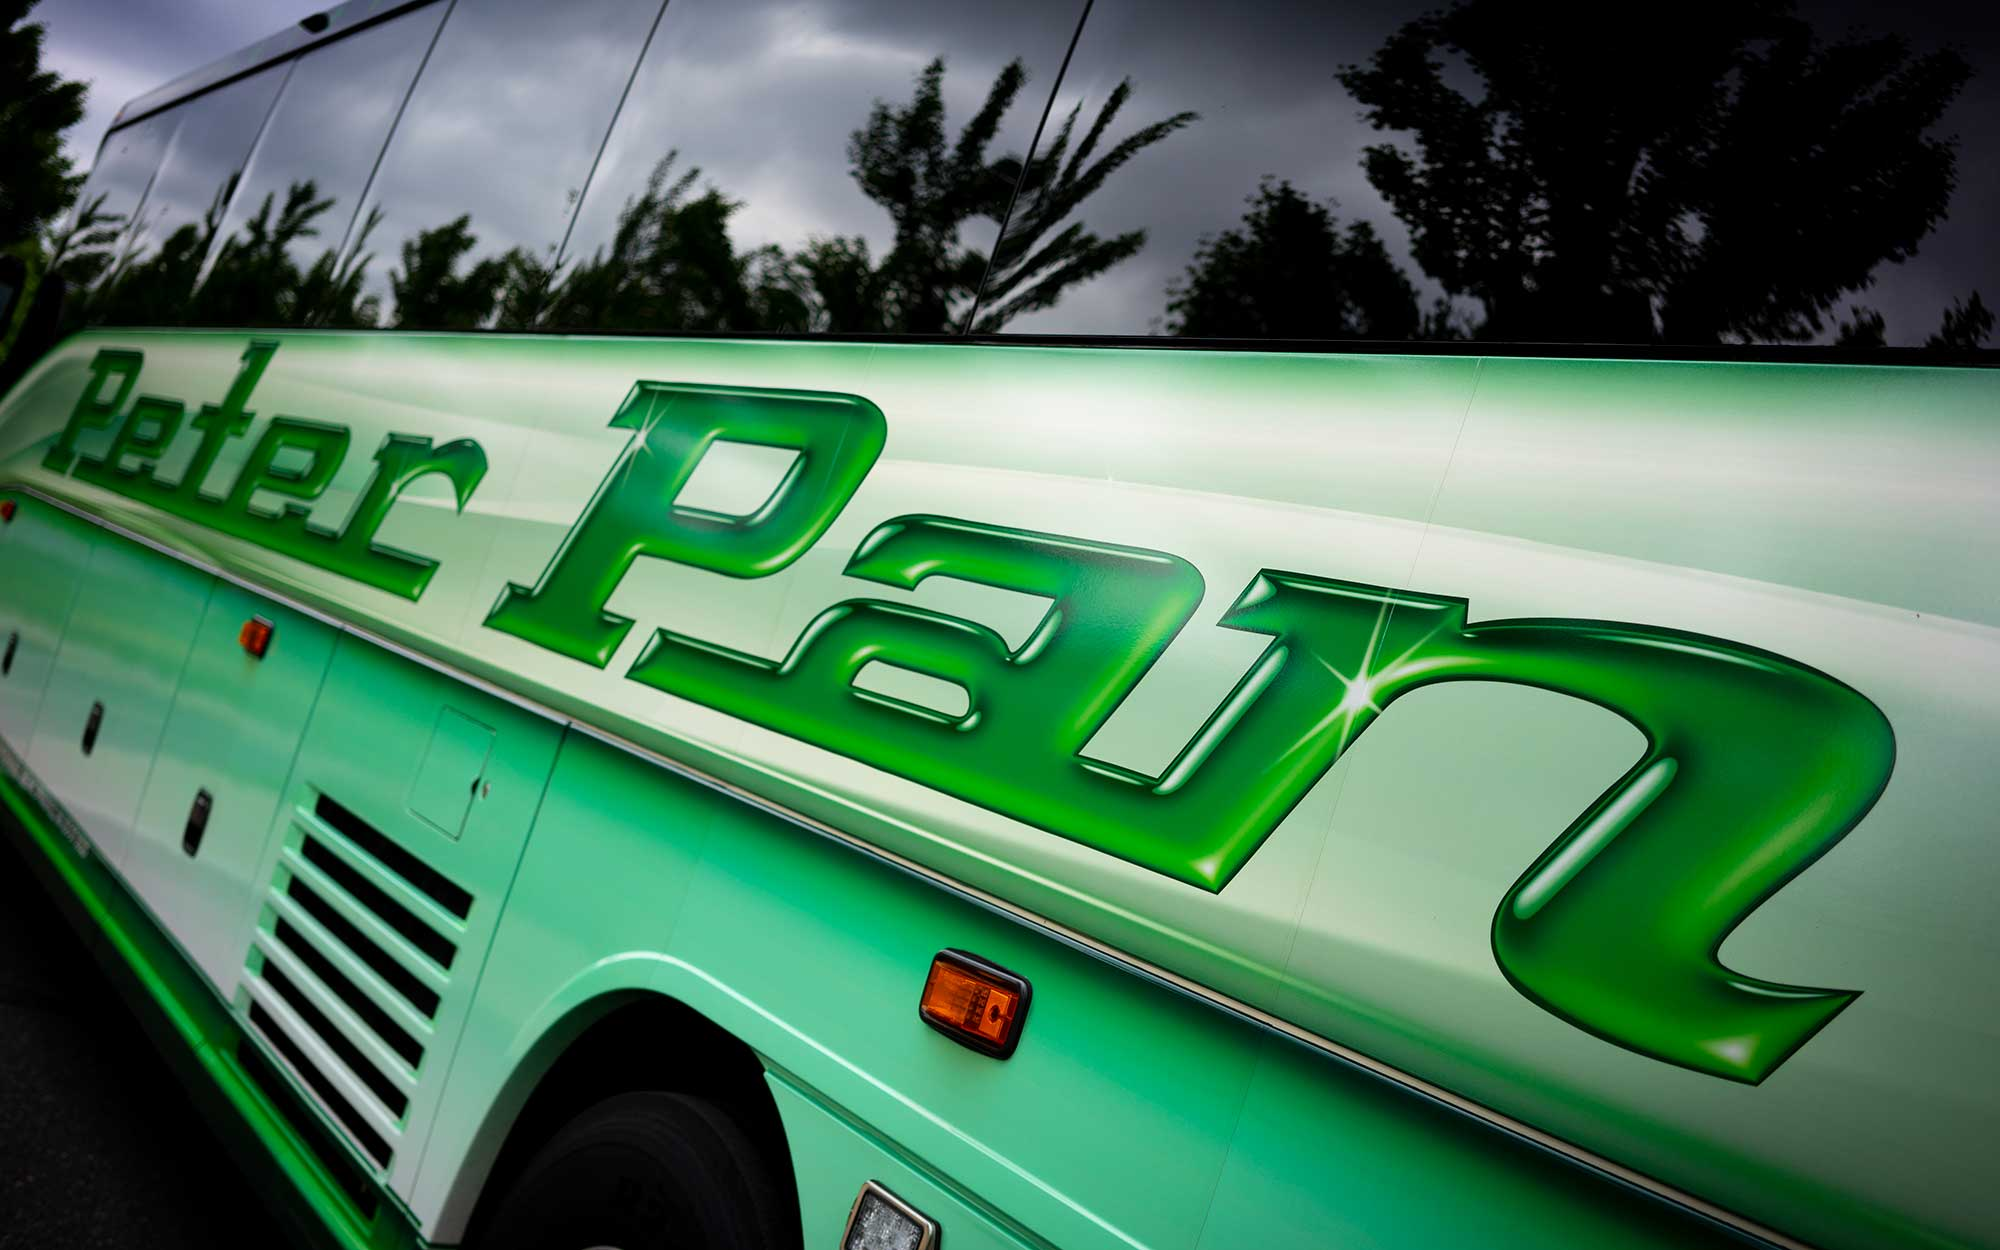 Step by Step Guide on How to Change or Get Refunds on Peter Pan Bus Lines